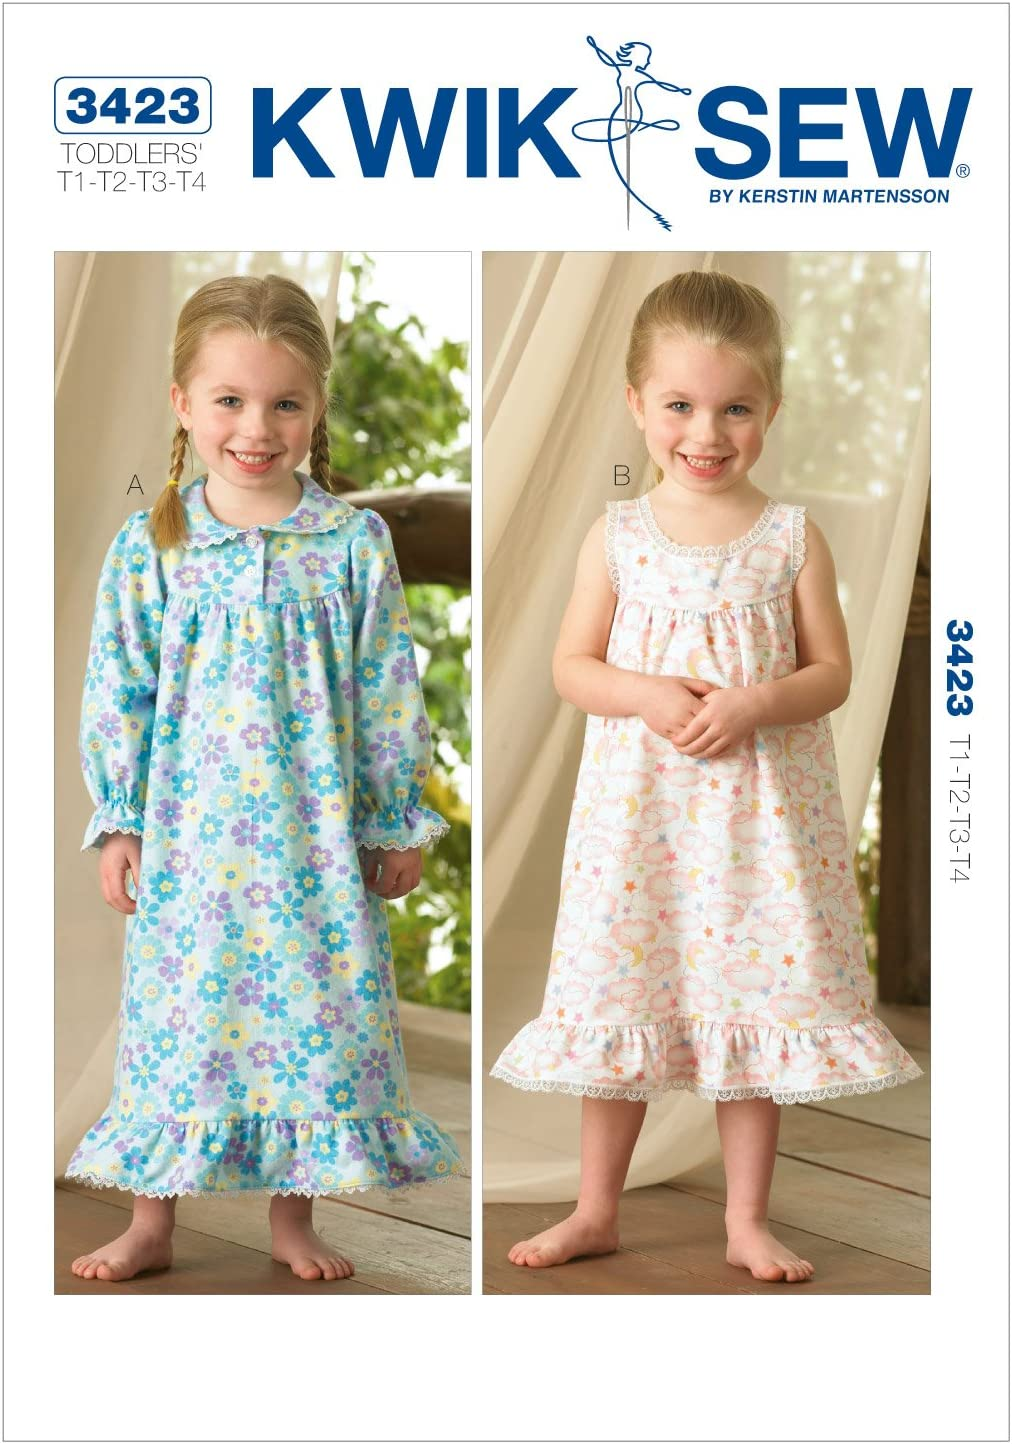 Kwik Sew Genuine Free Shipping K3423 Nightgowns Sale special price Sewing Pattern Size T1-T2-T3-T4